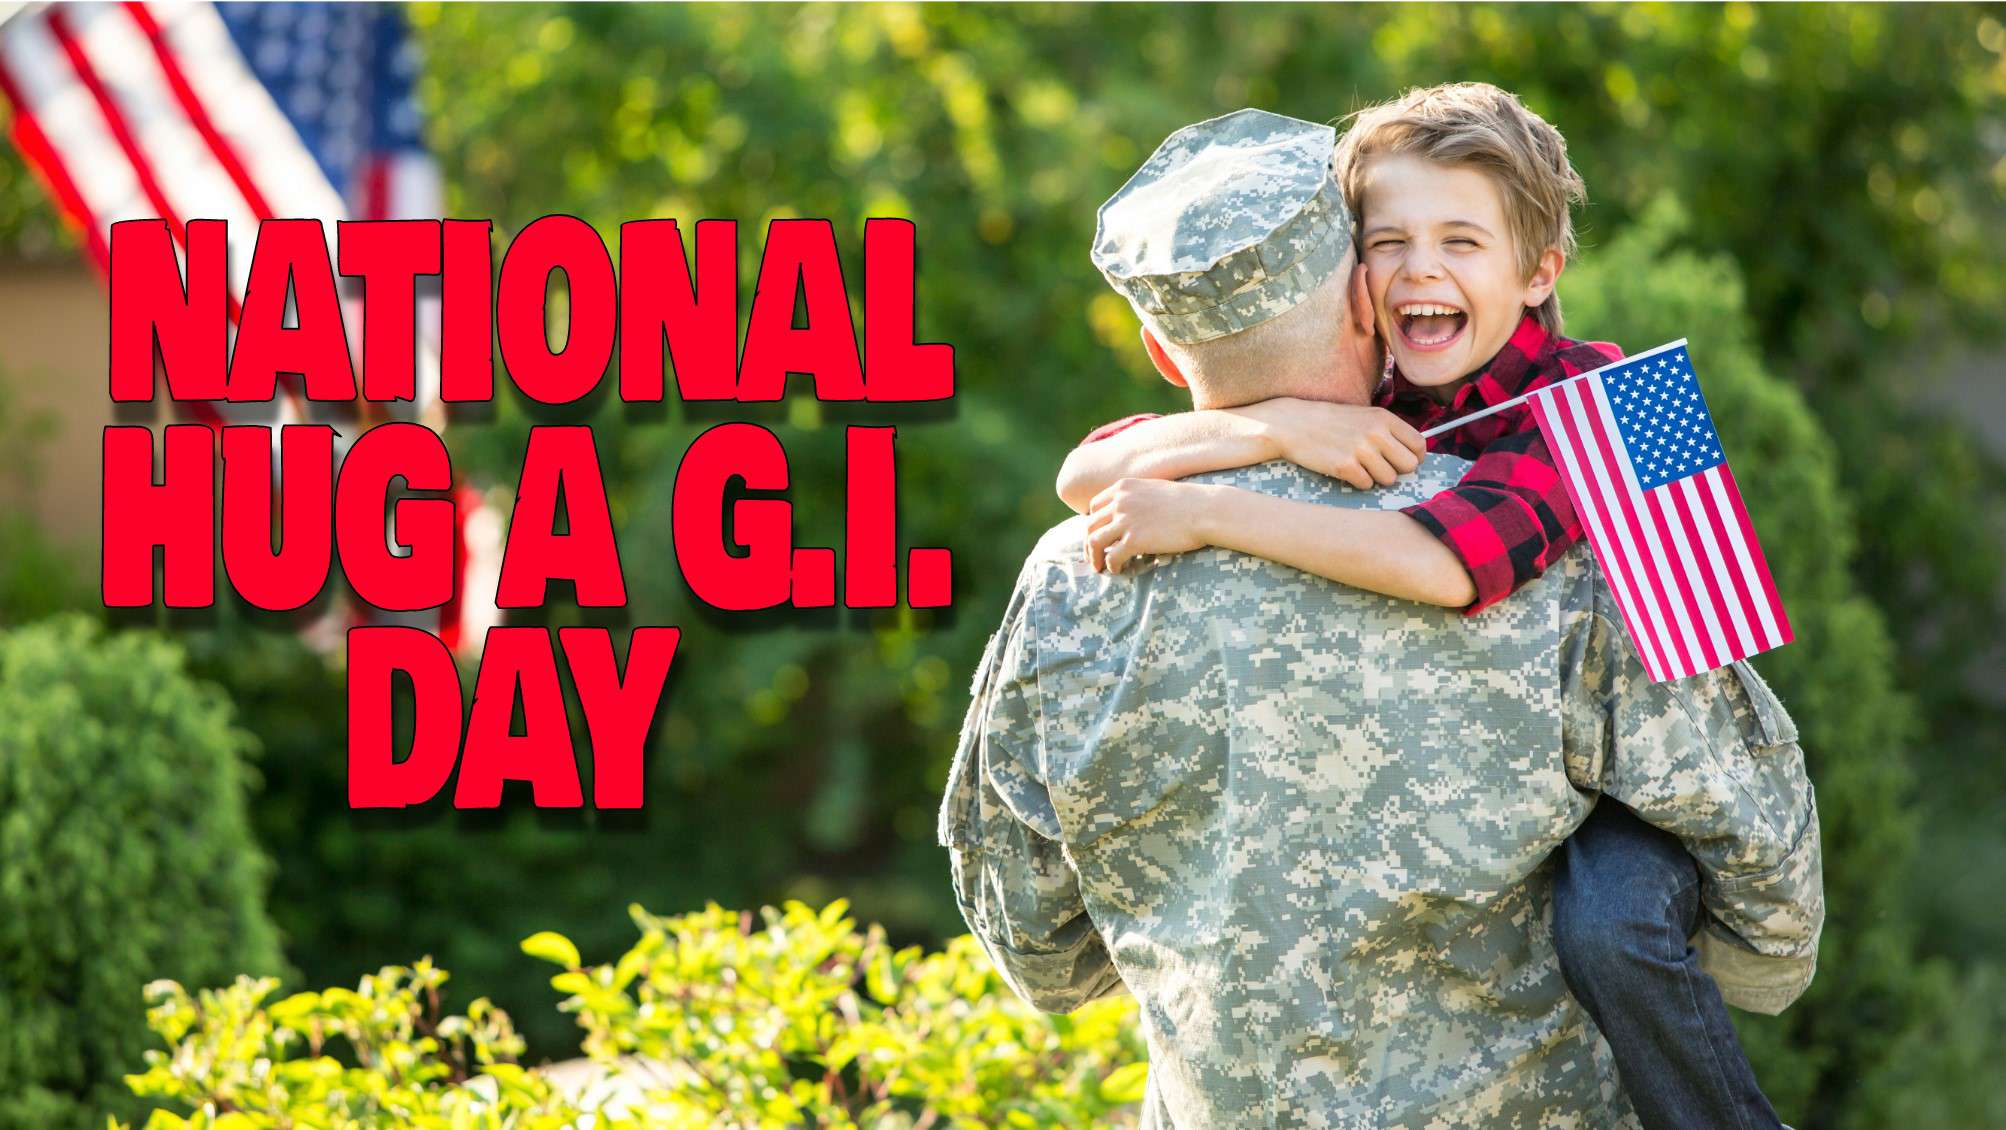 National Hug a G.I. Day Wishes Unique Image